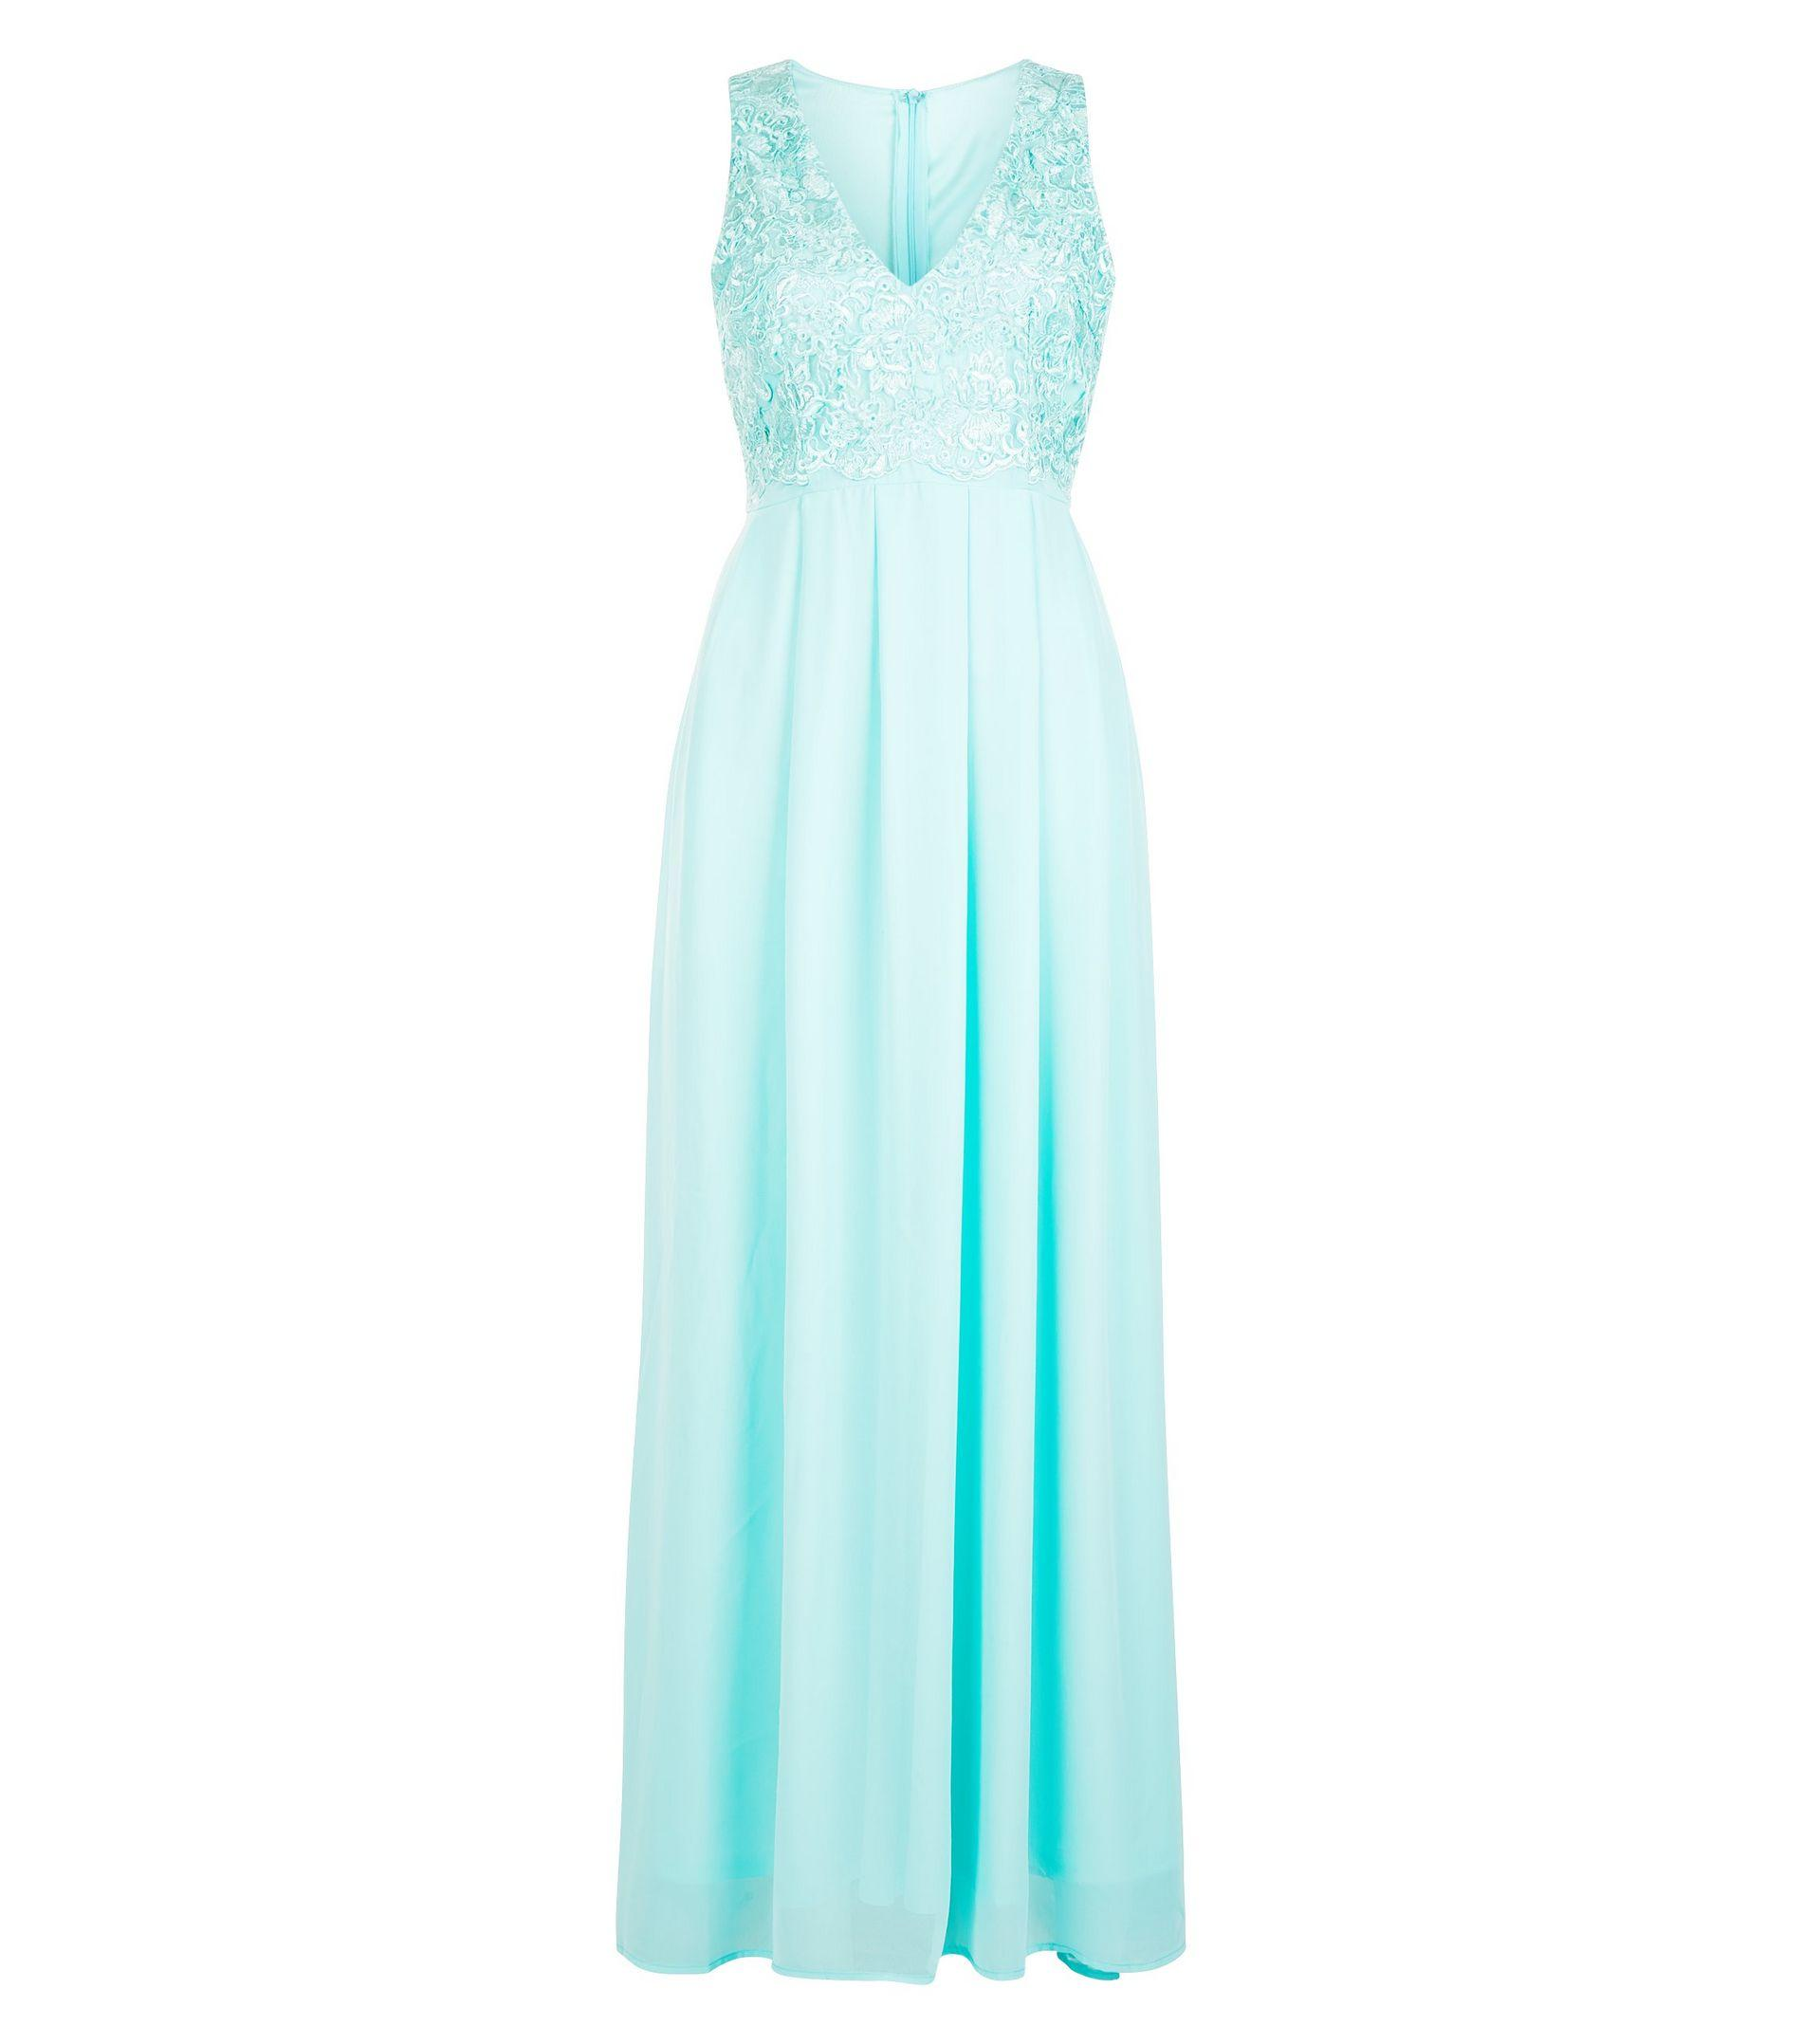 Ax Paris Turquoise Lace Panel Maxi Dress in Blue - Lyst